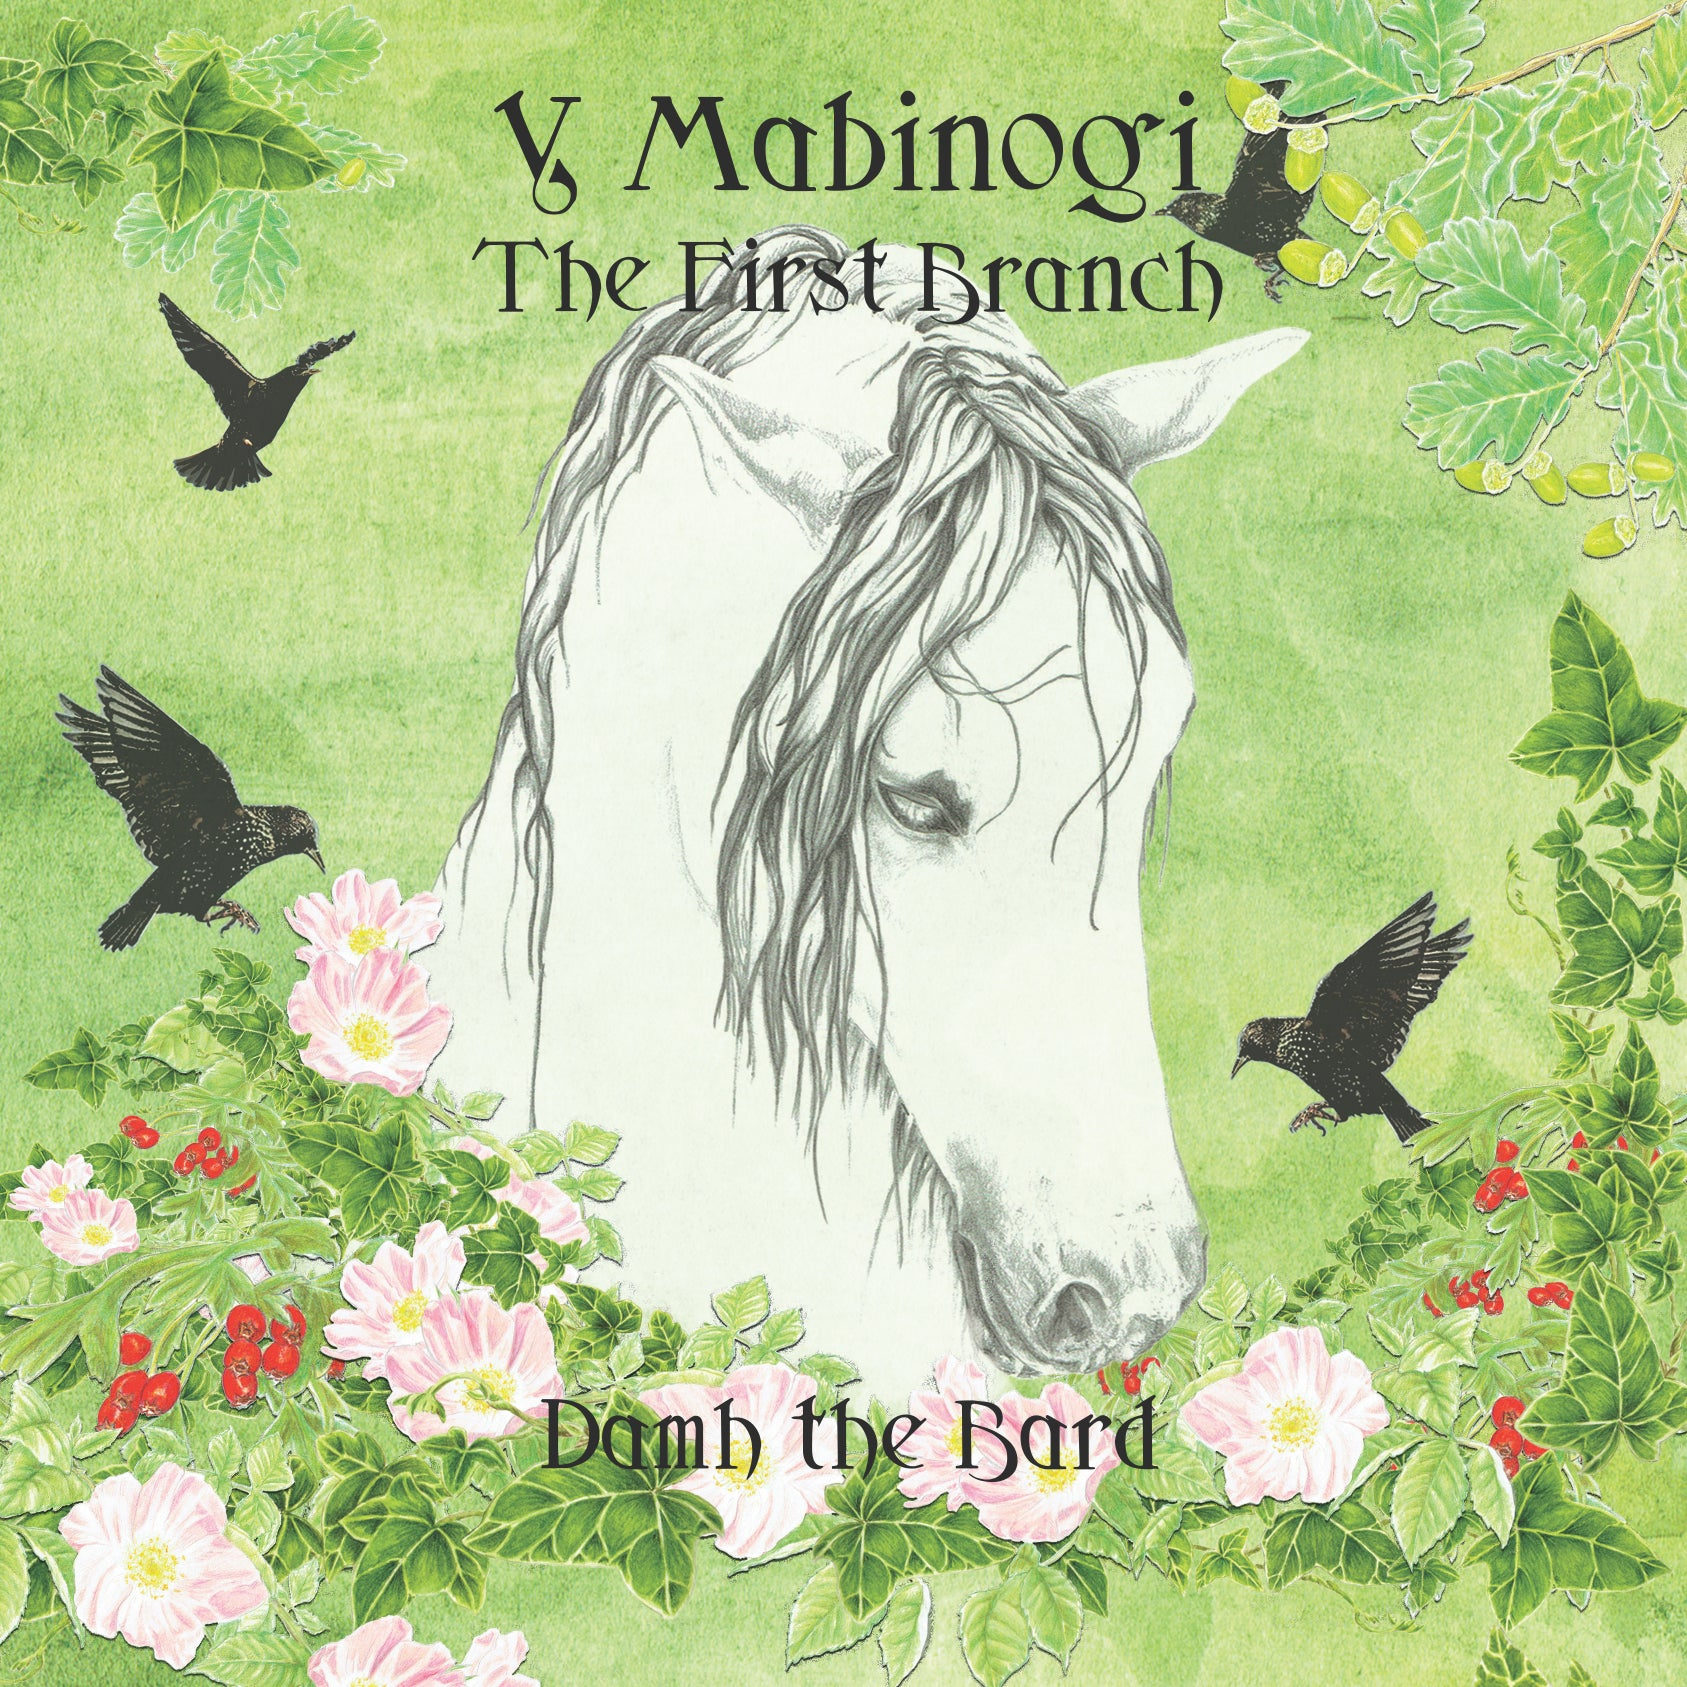 Y Mabinogi - The First Branch - Damh the Bard